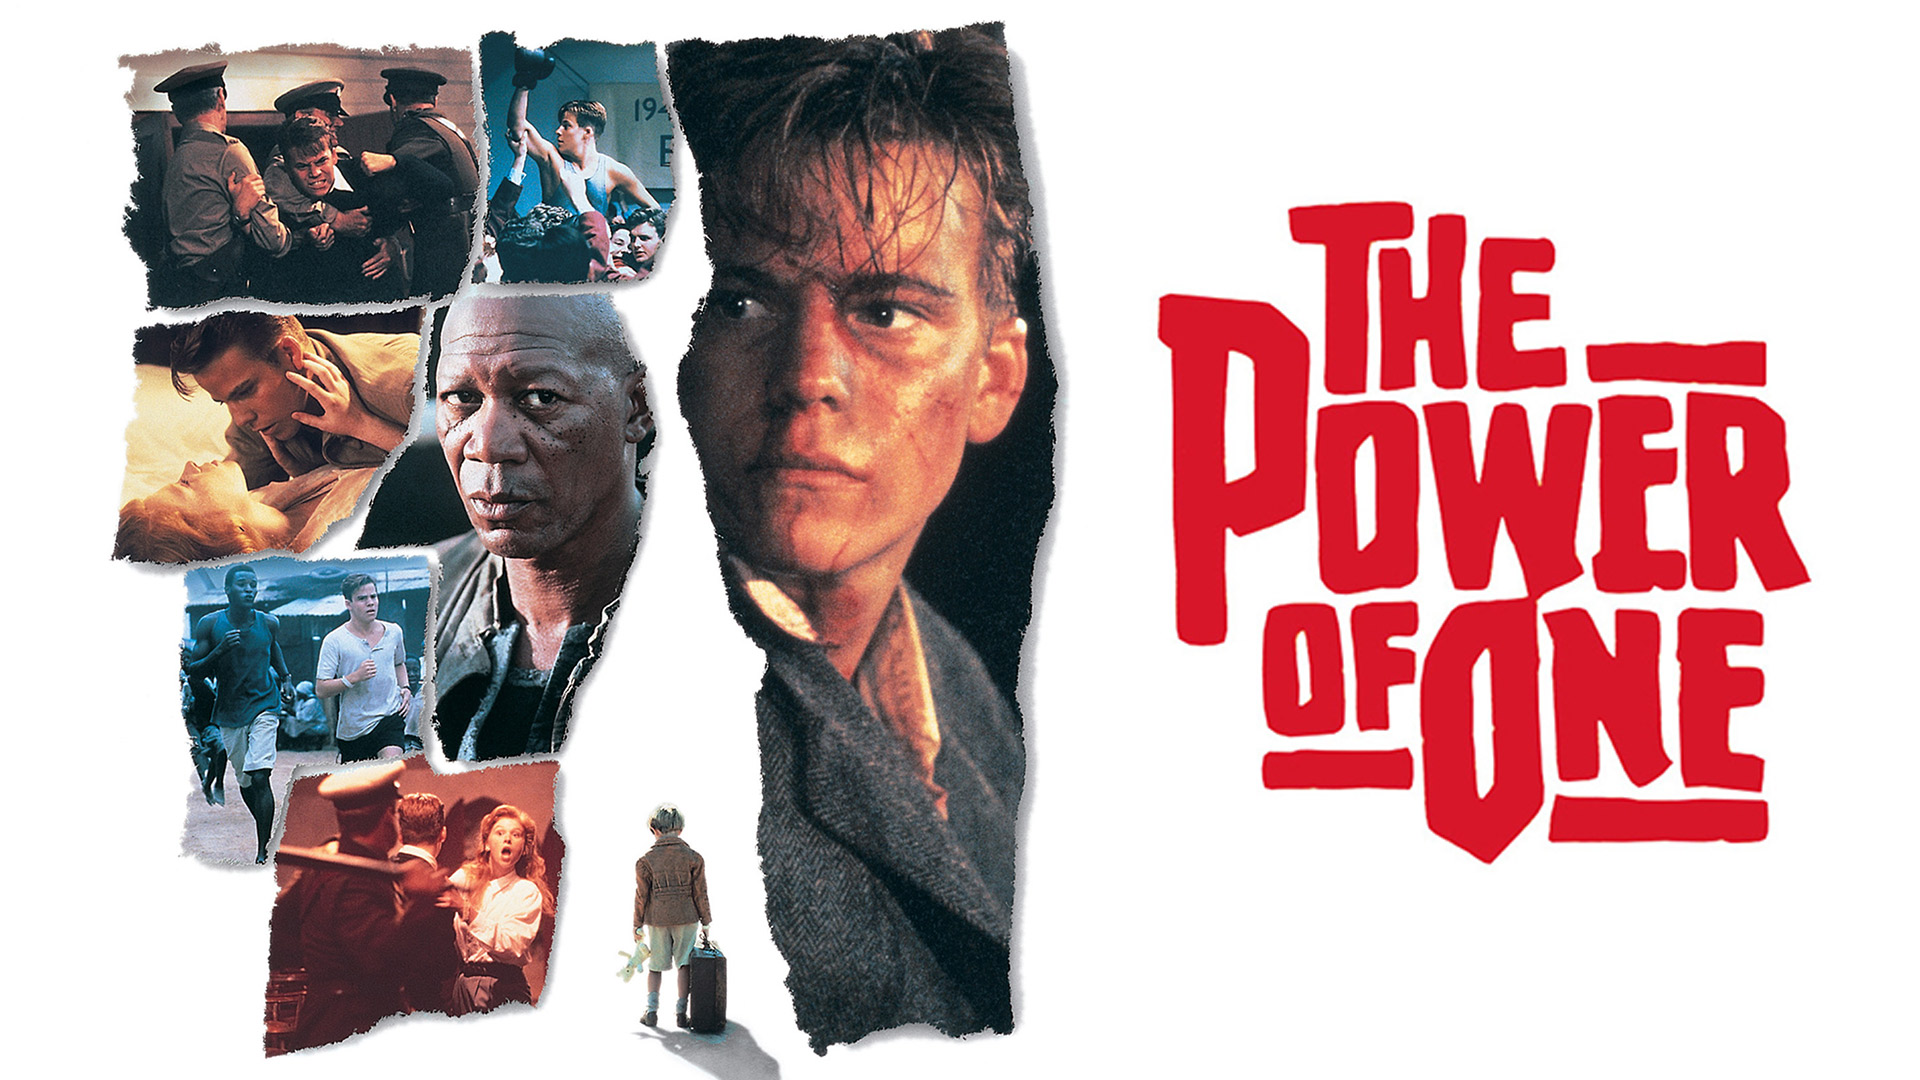 The Power of One (字幕版)